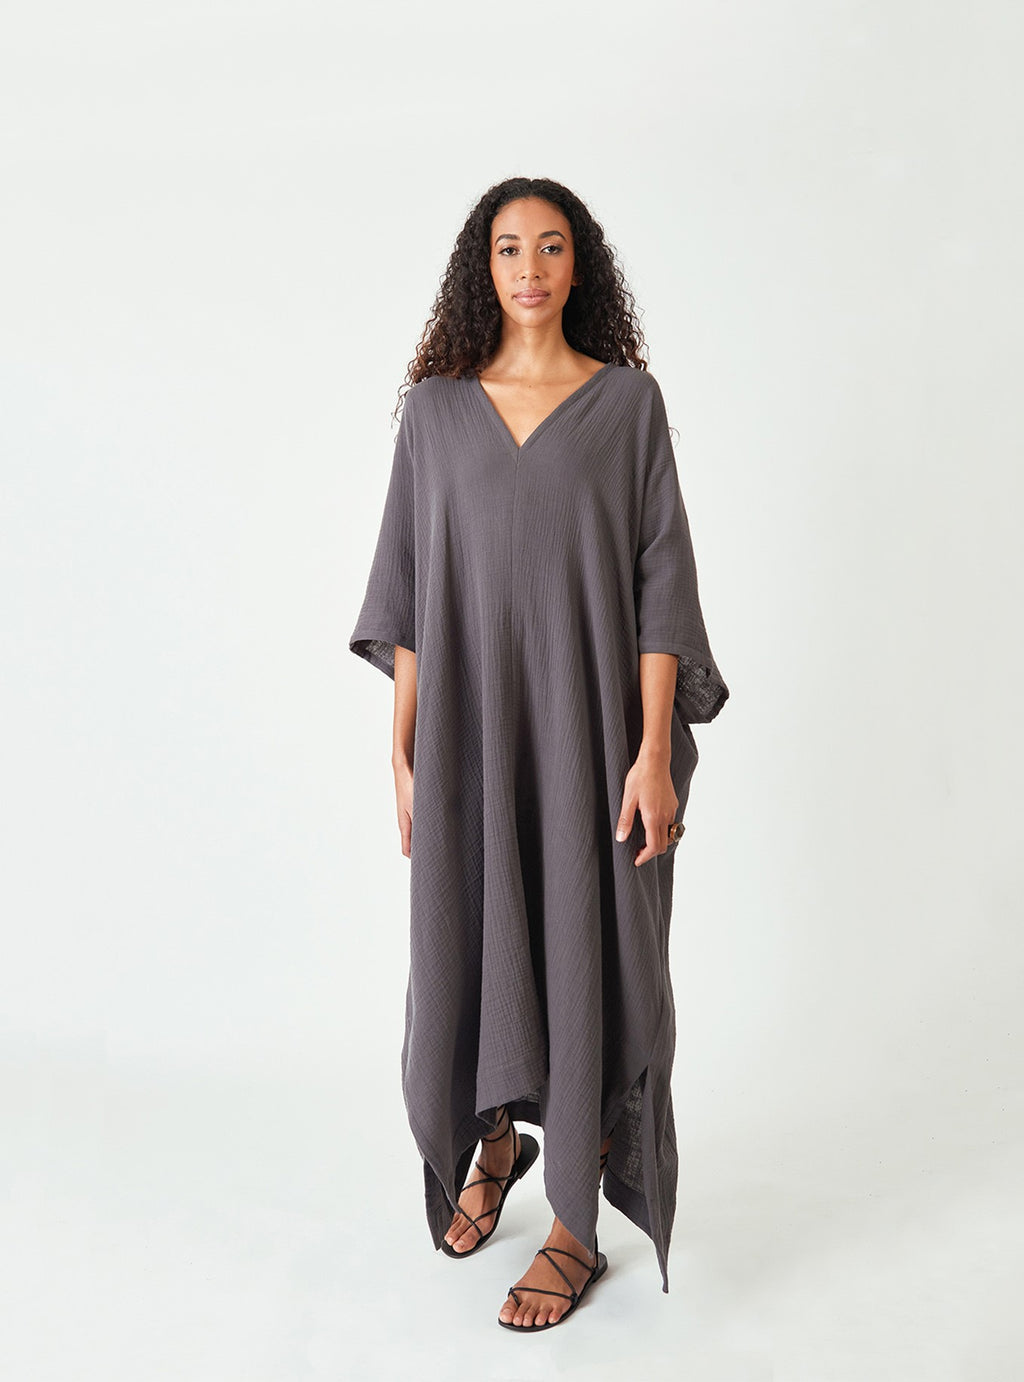 Sanctuaire-CELESTE-KAFTAN-CHARCOAL-PREVIEW-1-NEW_3